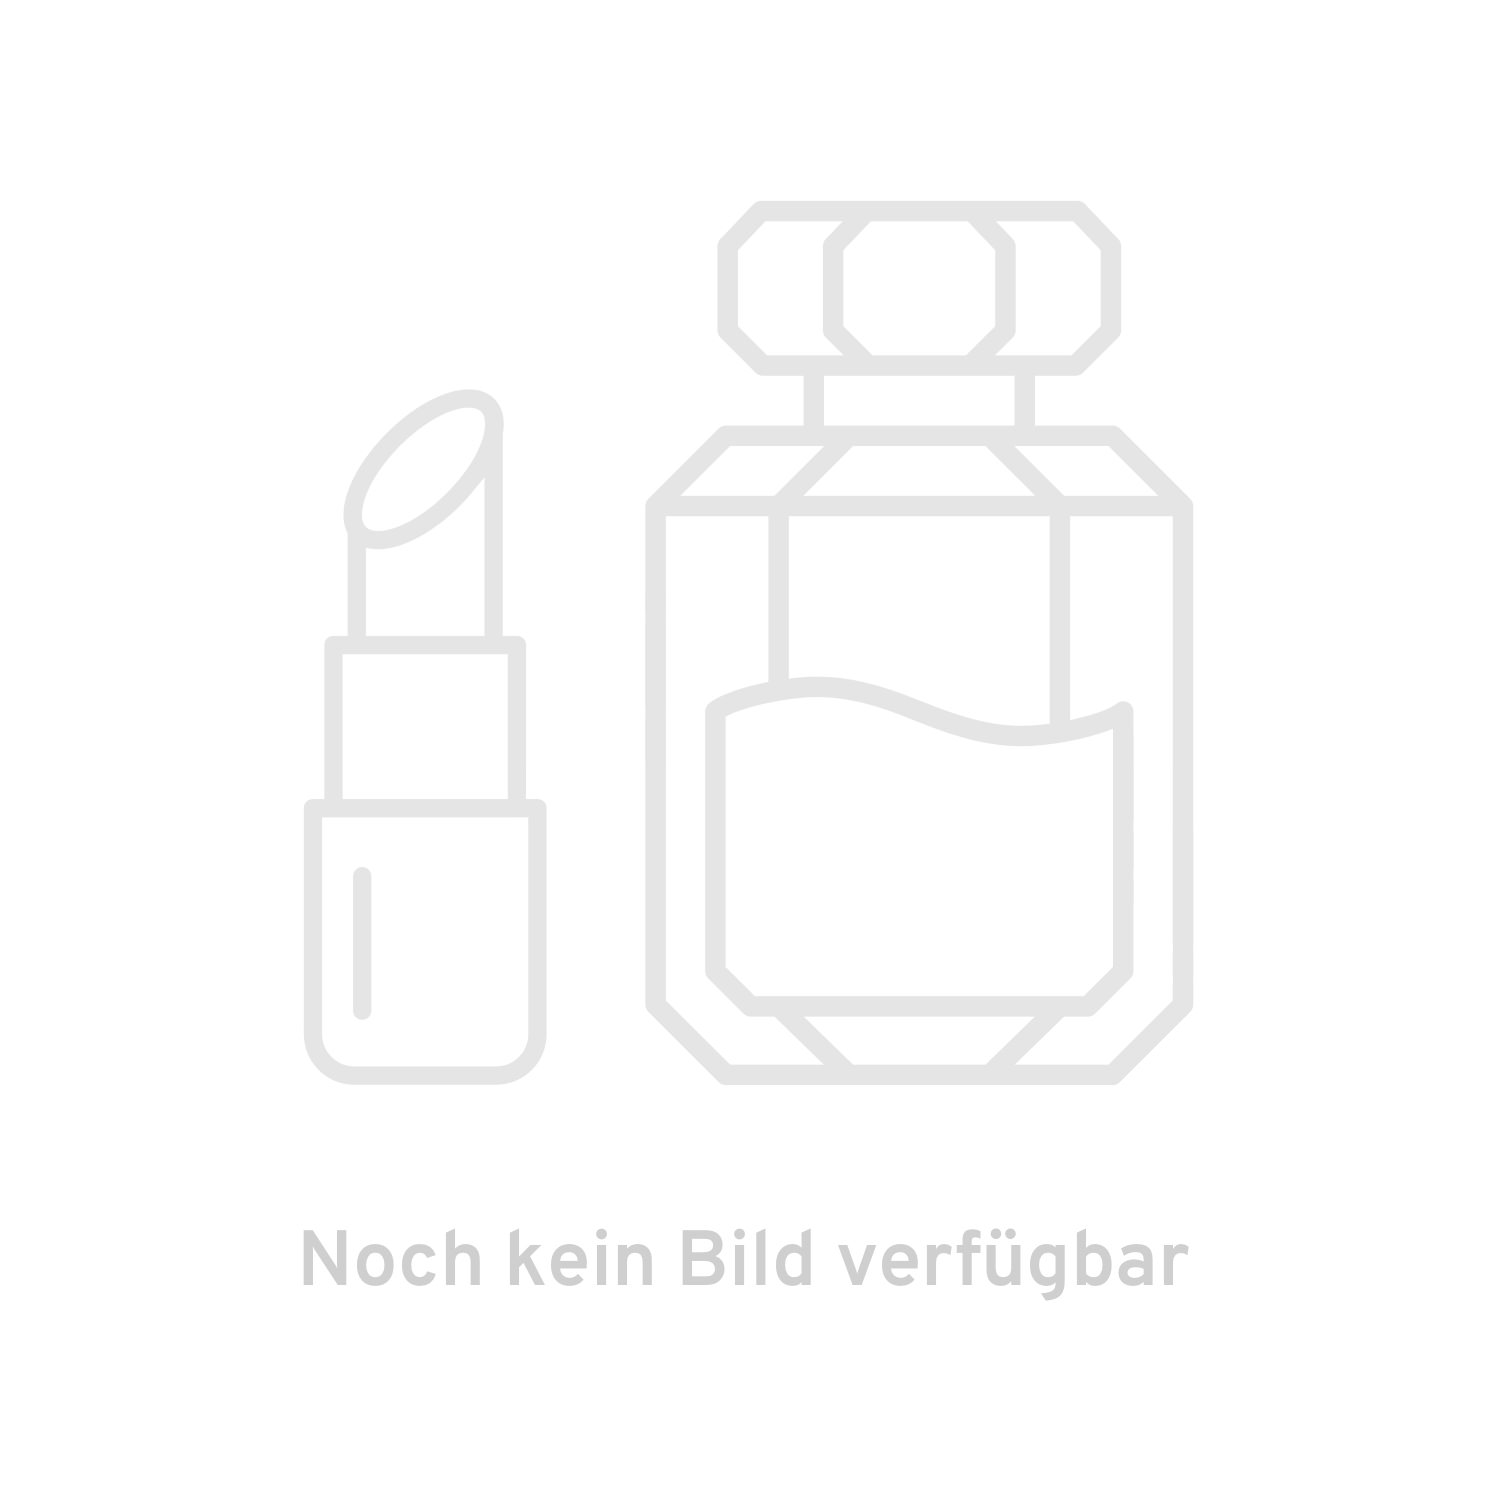 AFTER-SHAVE FLUID MEER & MISTRAL